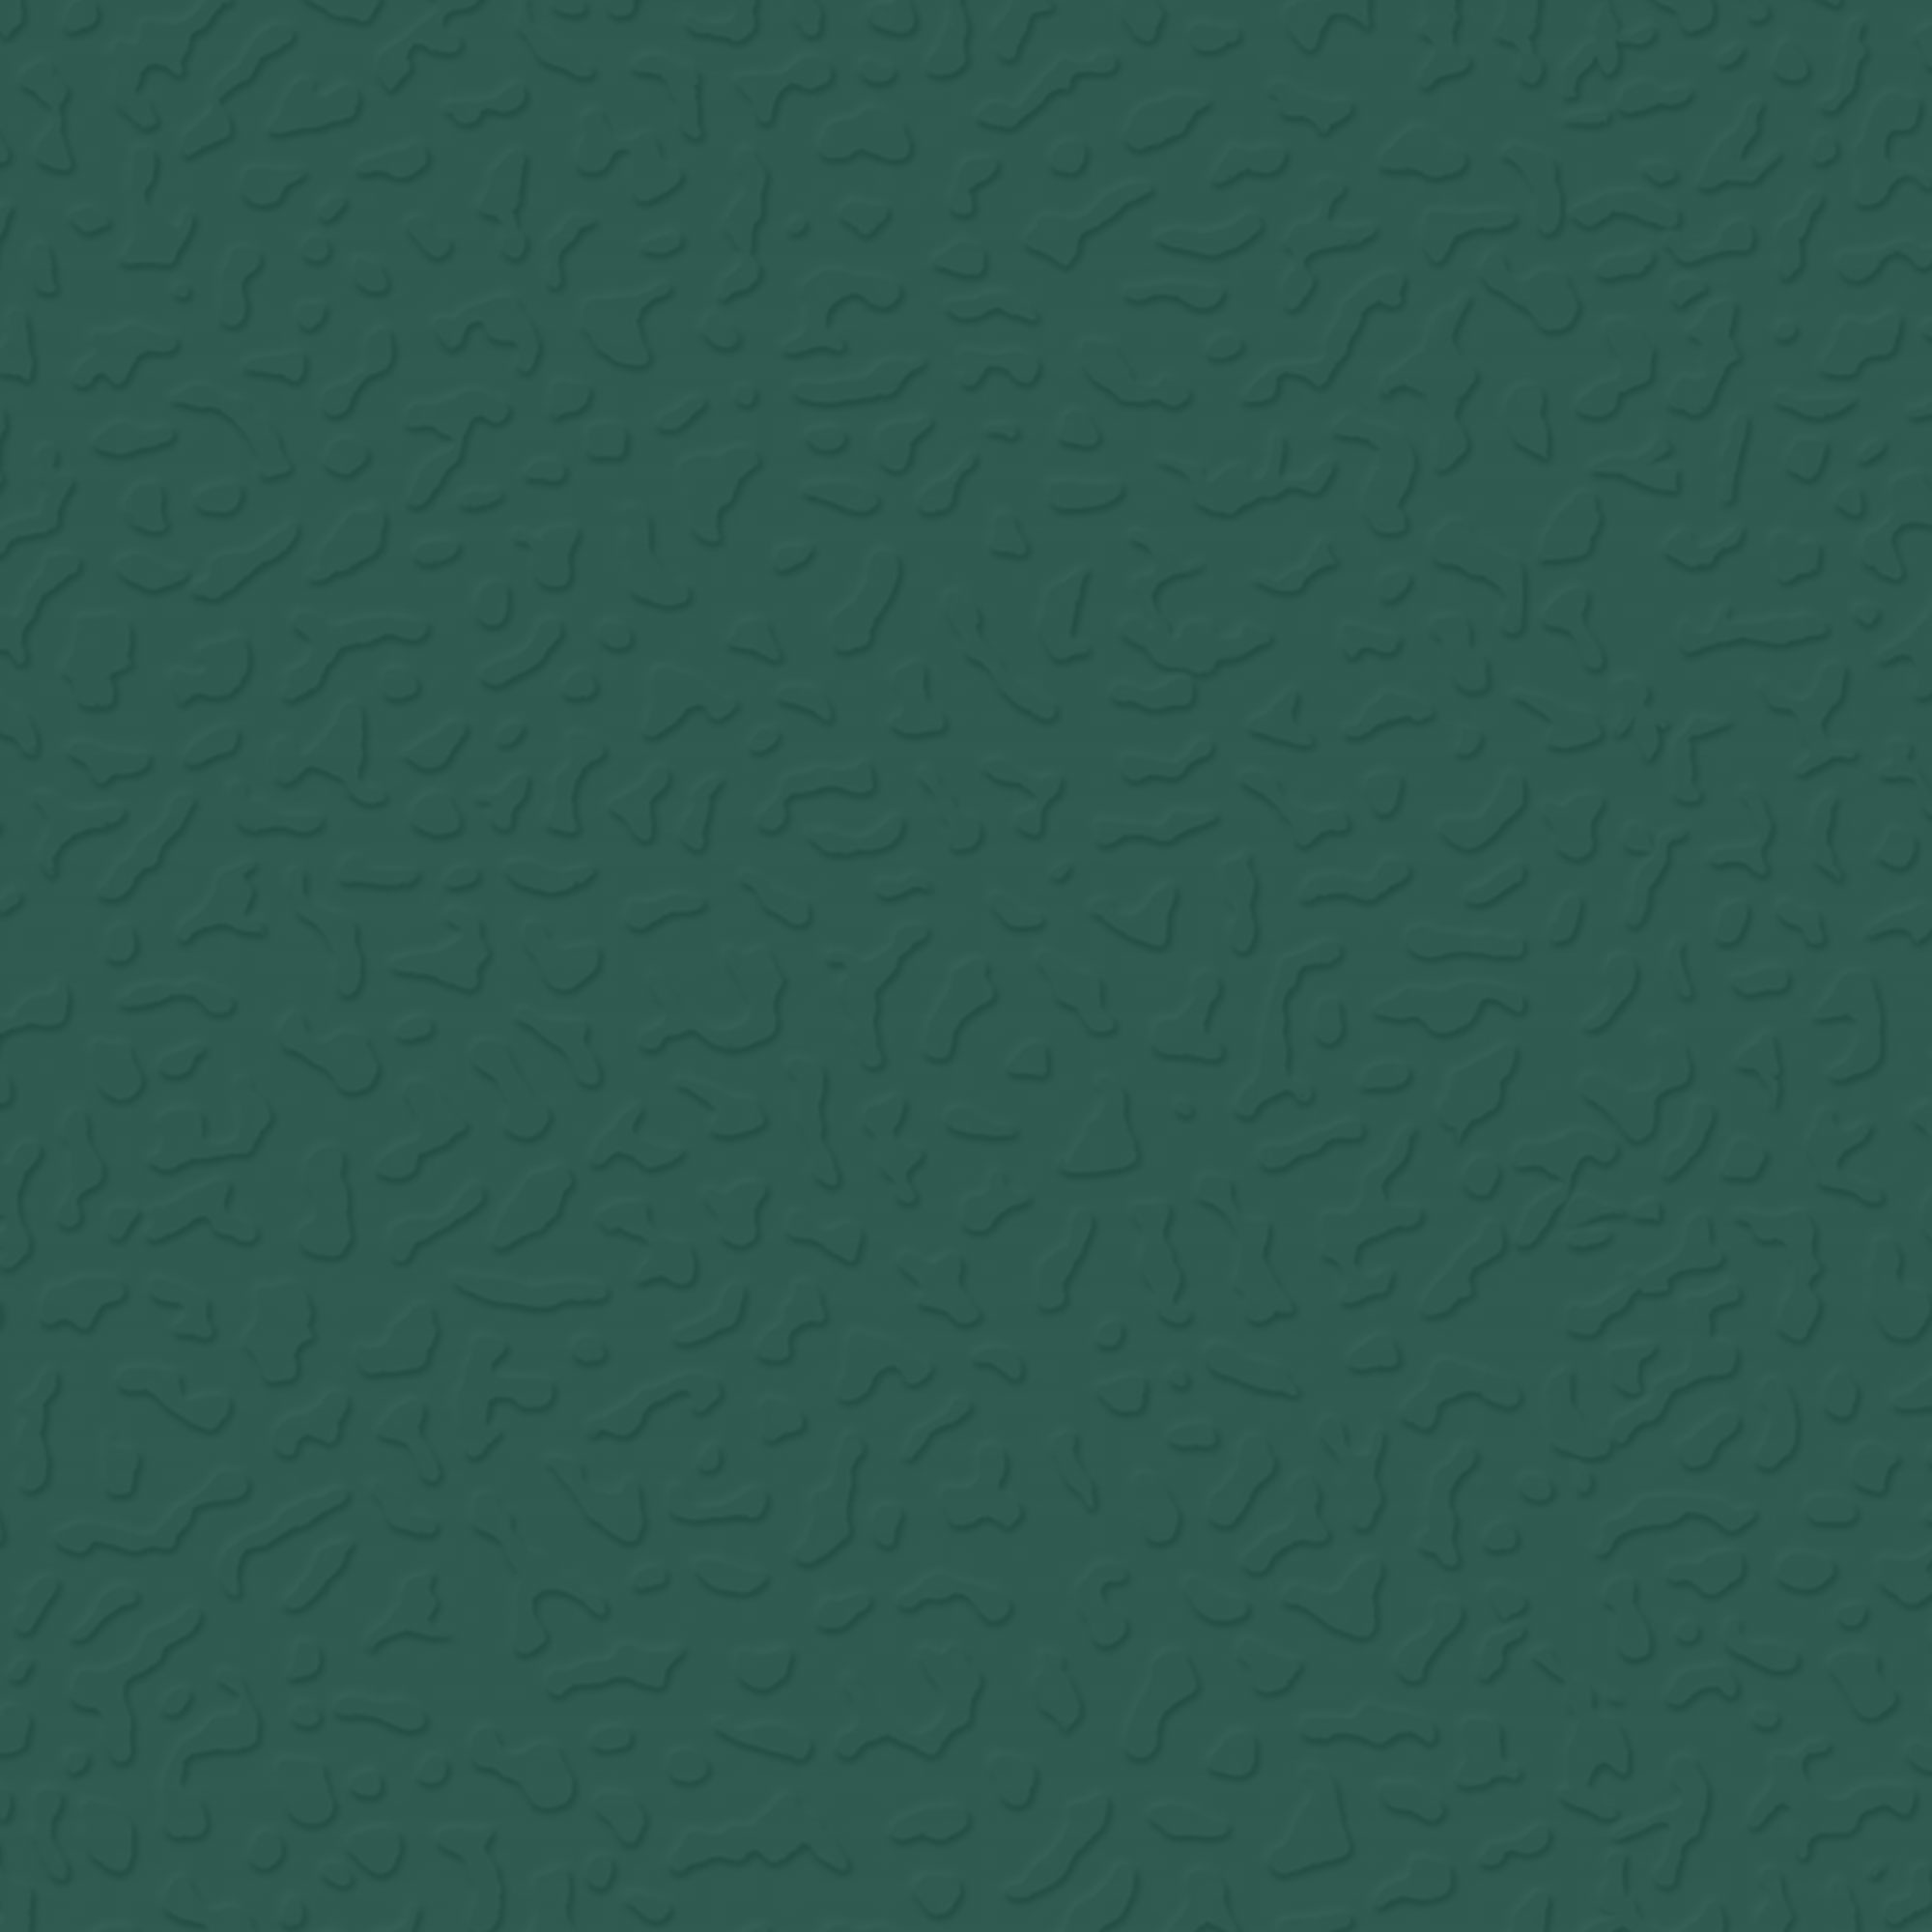 Roppe Rubber Tile 900 - Textured Design (993) Forest Green Rubber Flooring